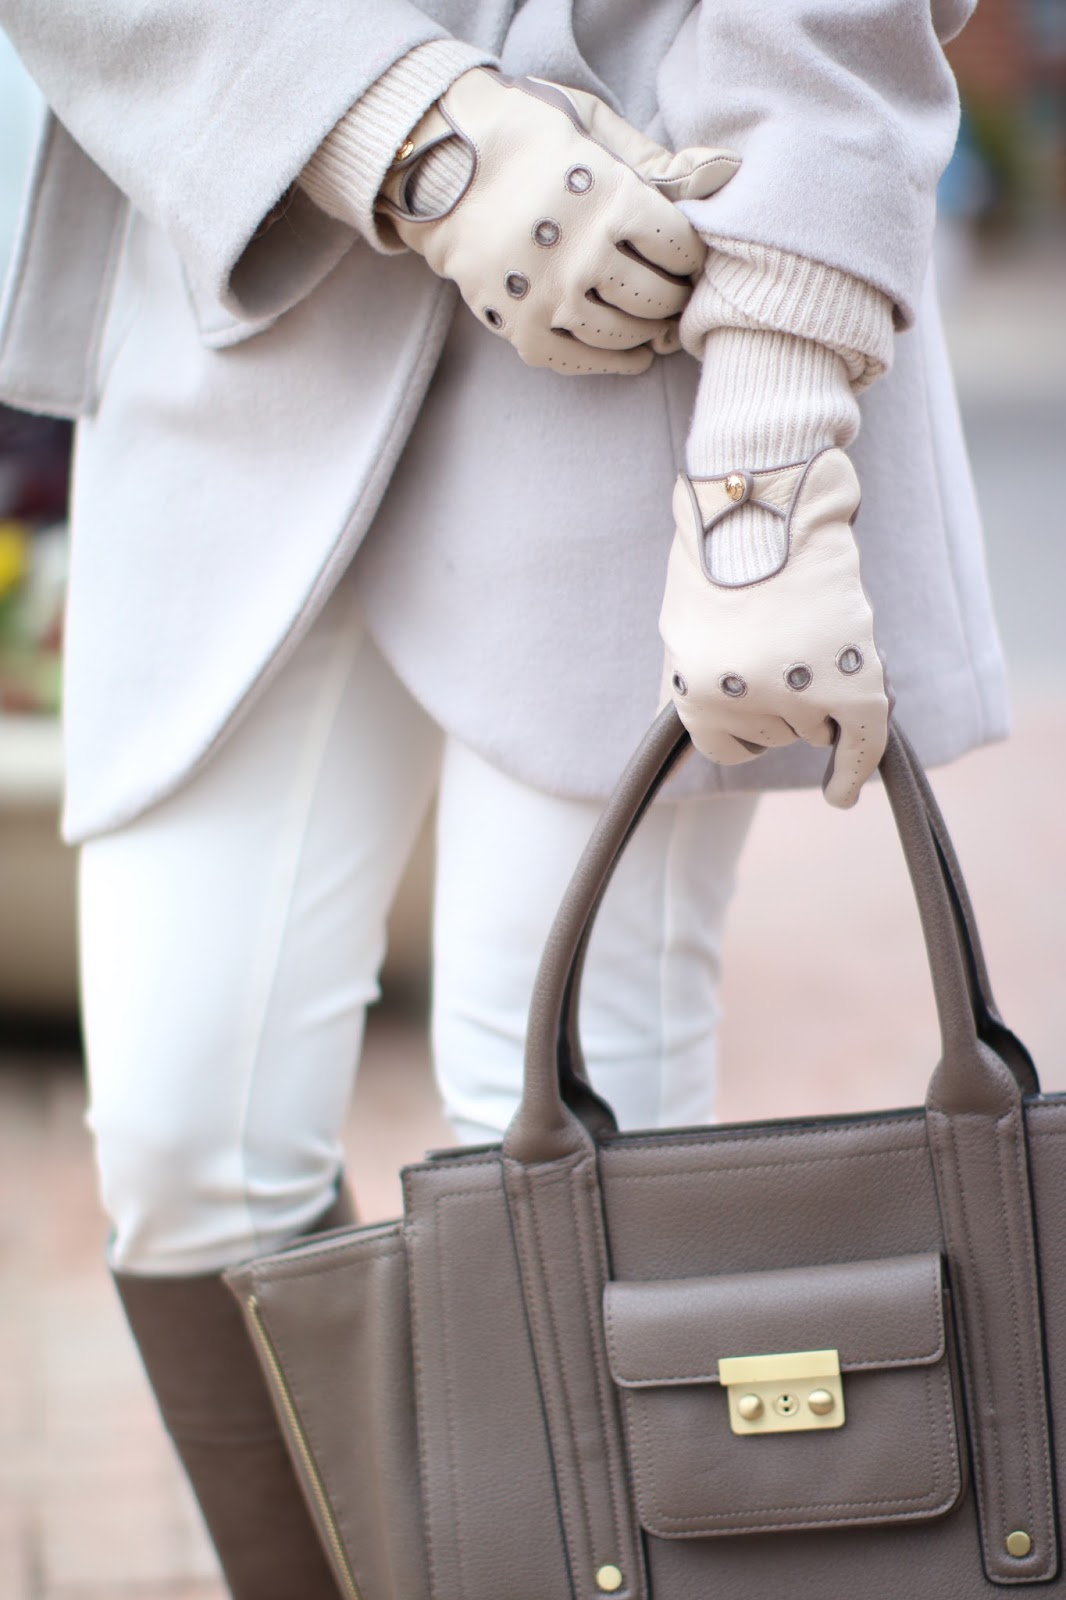 tahari shawl collar coat, shawl collar coat, olivia pope style, henri bendel moto gloves, philip lim for target handbag, tory burch boots, taupe boots, wear white in winter, winter fashion, fashion blogger, dallas blogger, black girl blogger, how to wear neutrals